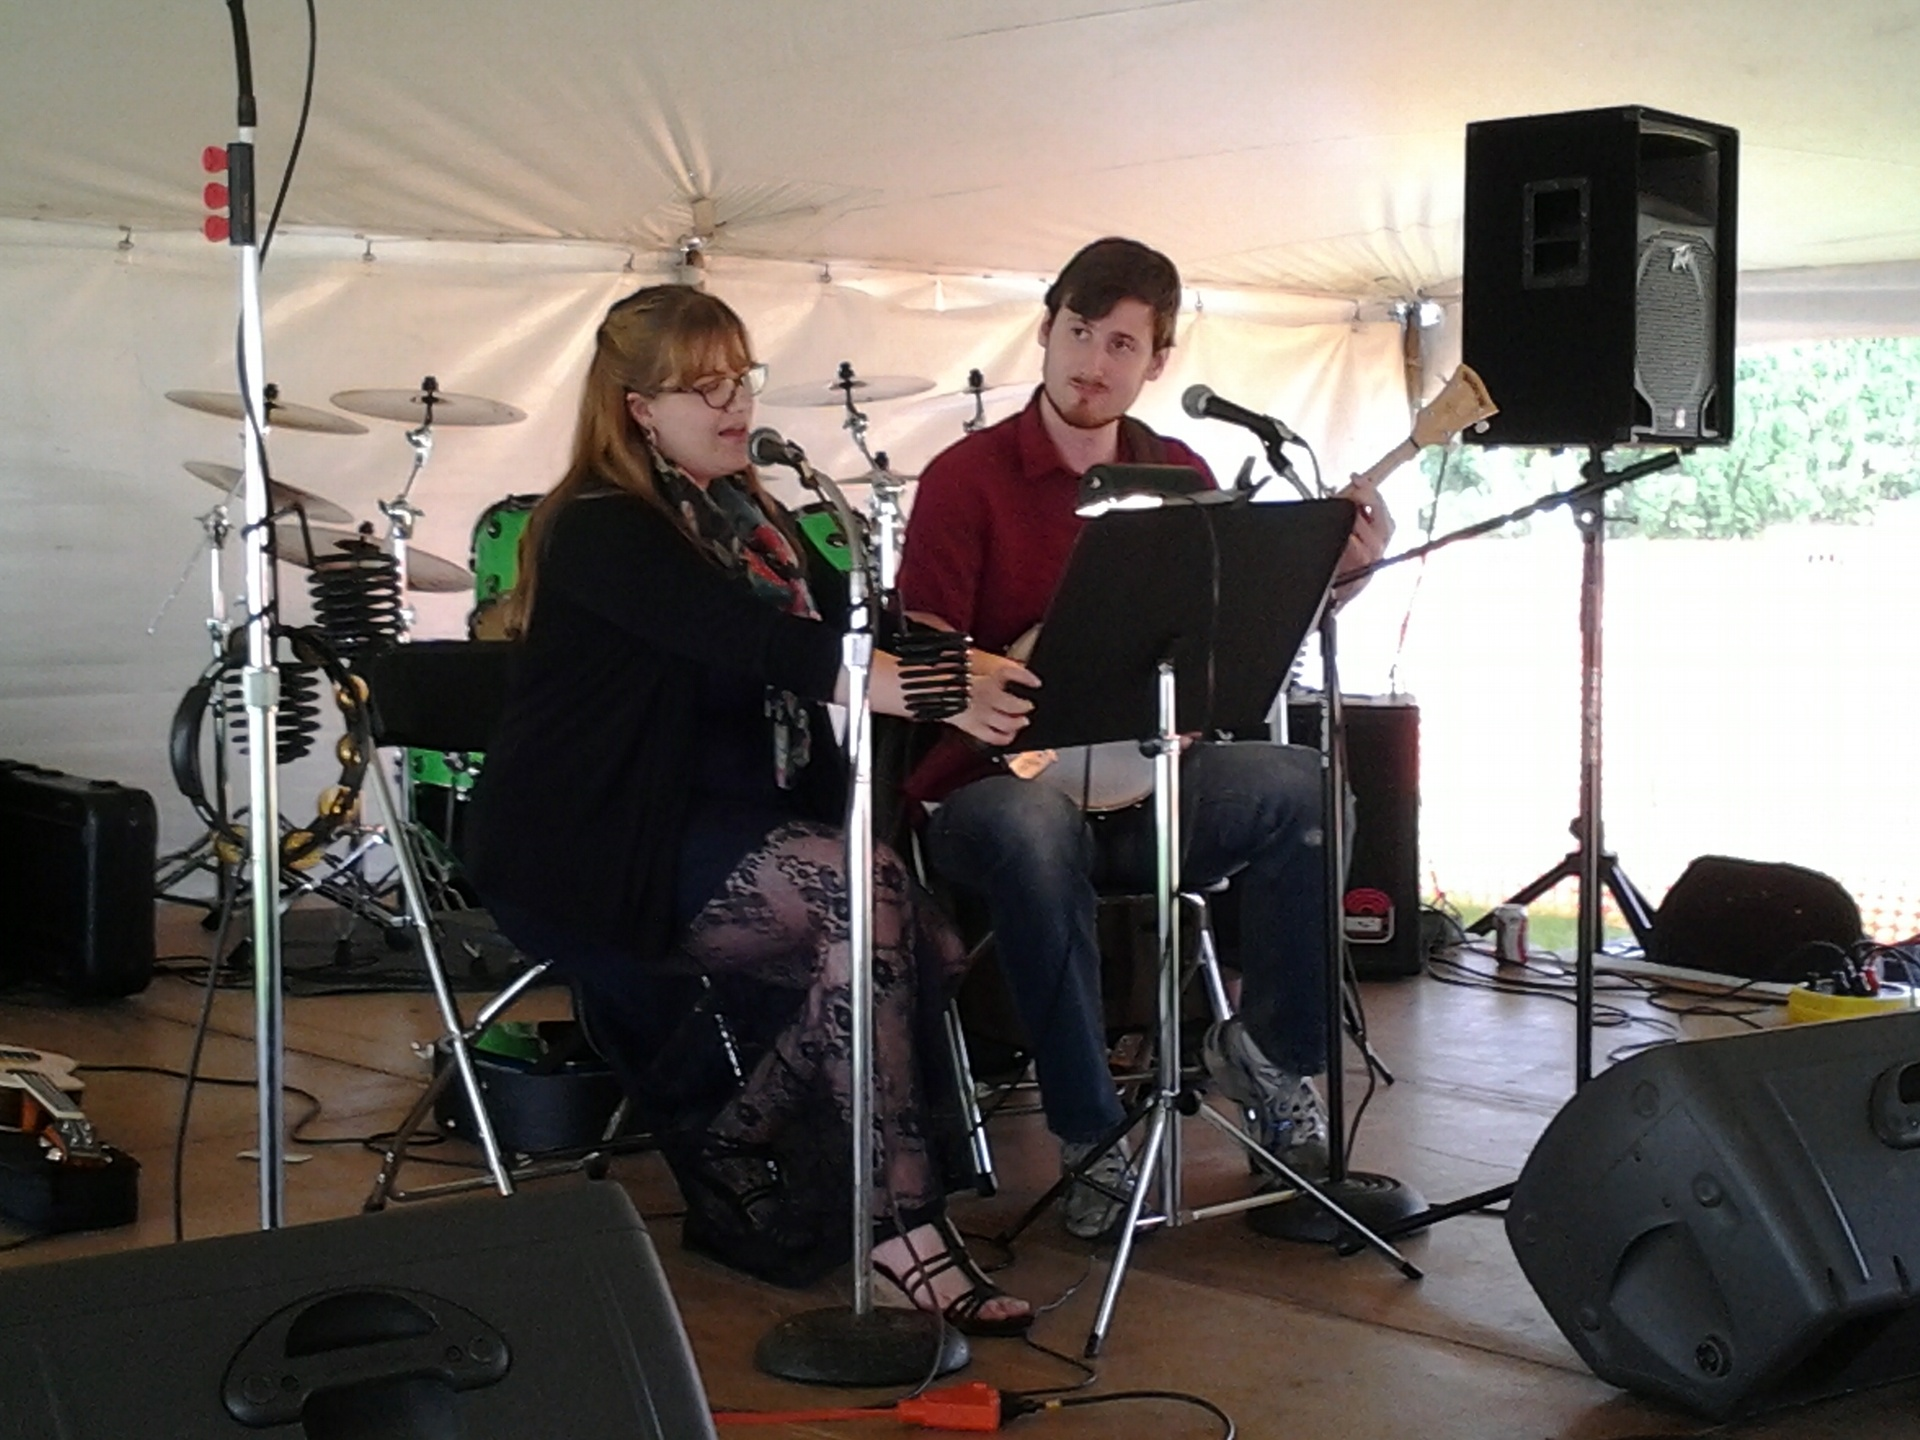 Live music in the tent on Saturday afternoon.